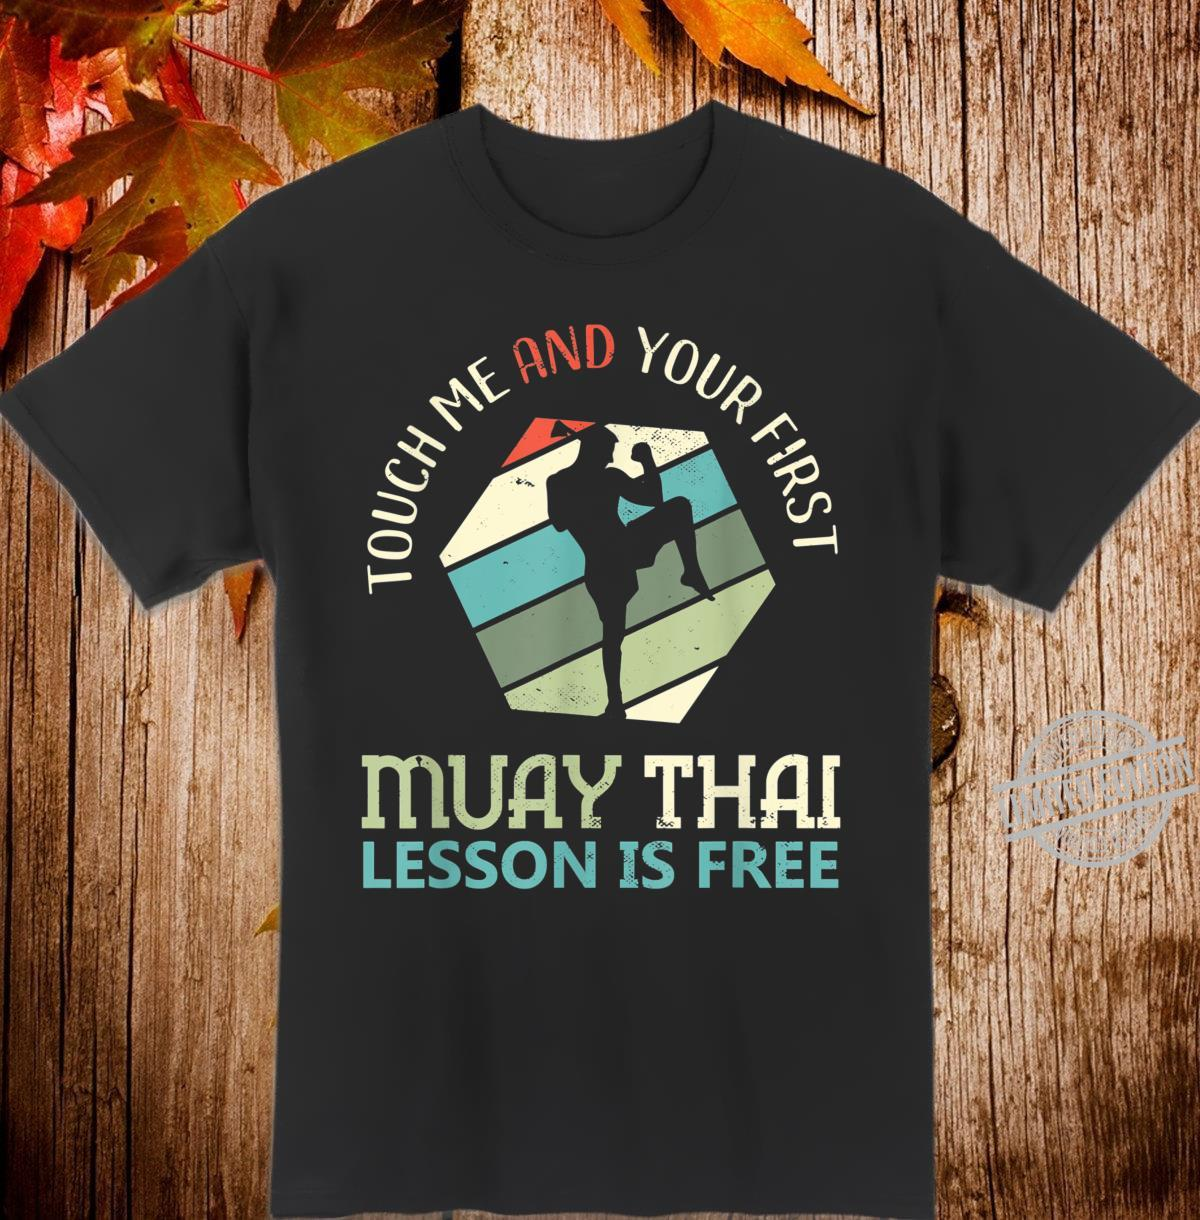 Touch Me And Your First Lesson Is Free MMA Muay Thai Shirt